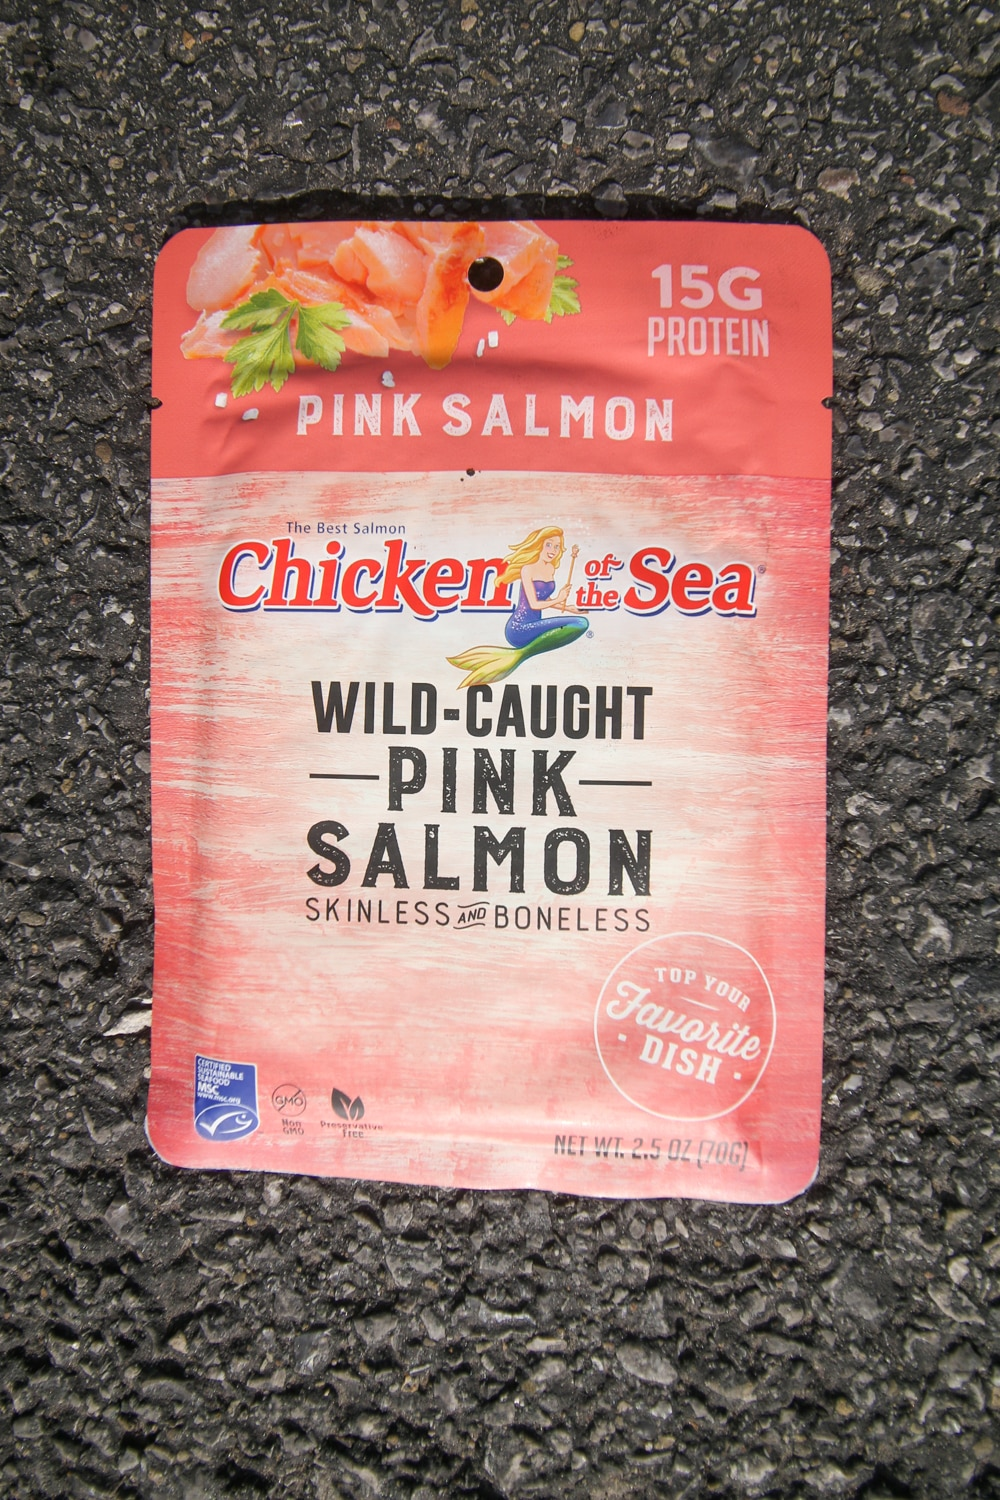 A pouch of pink salmon.